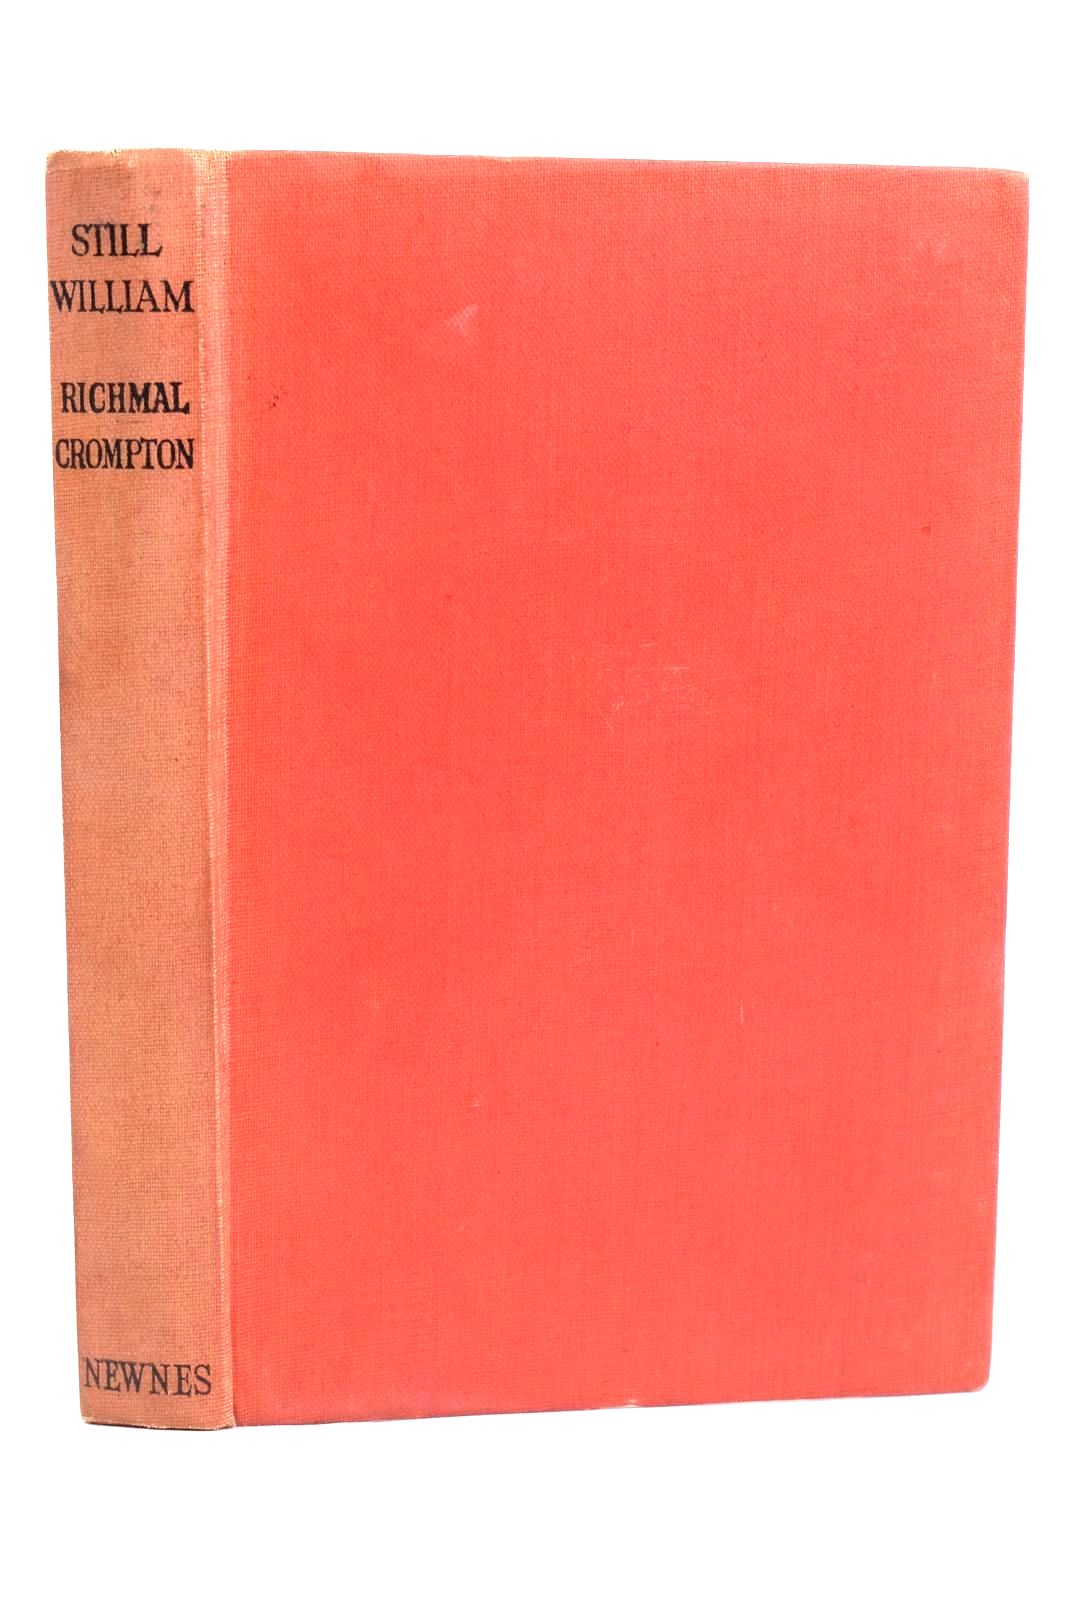 Photo of STILL WILLIAM- Stock Number: 1319685